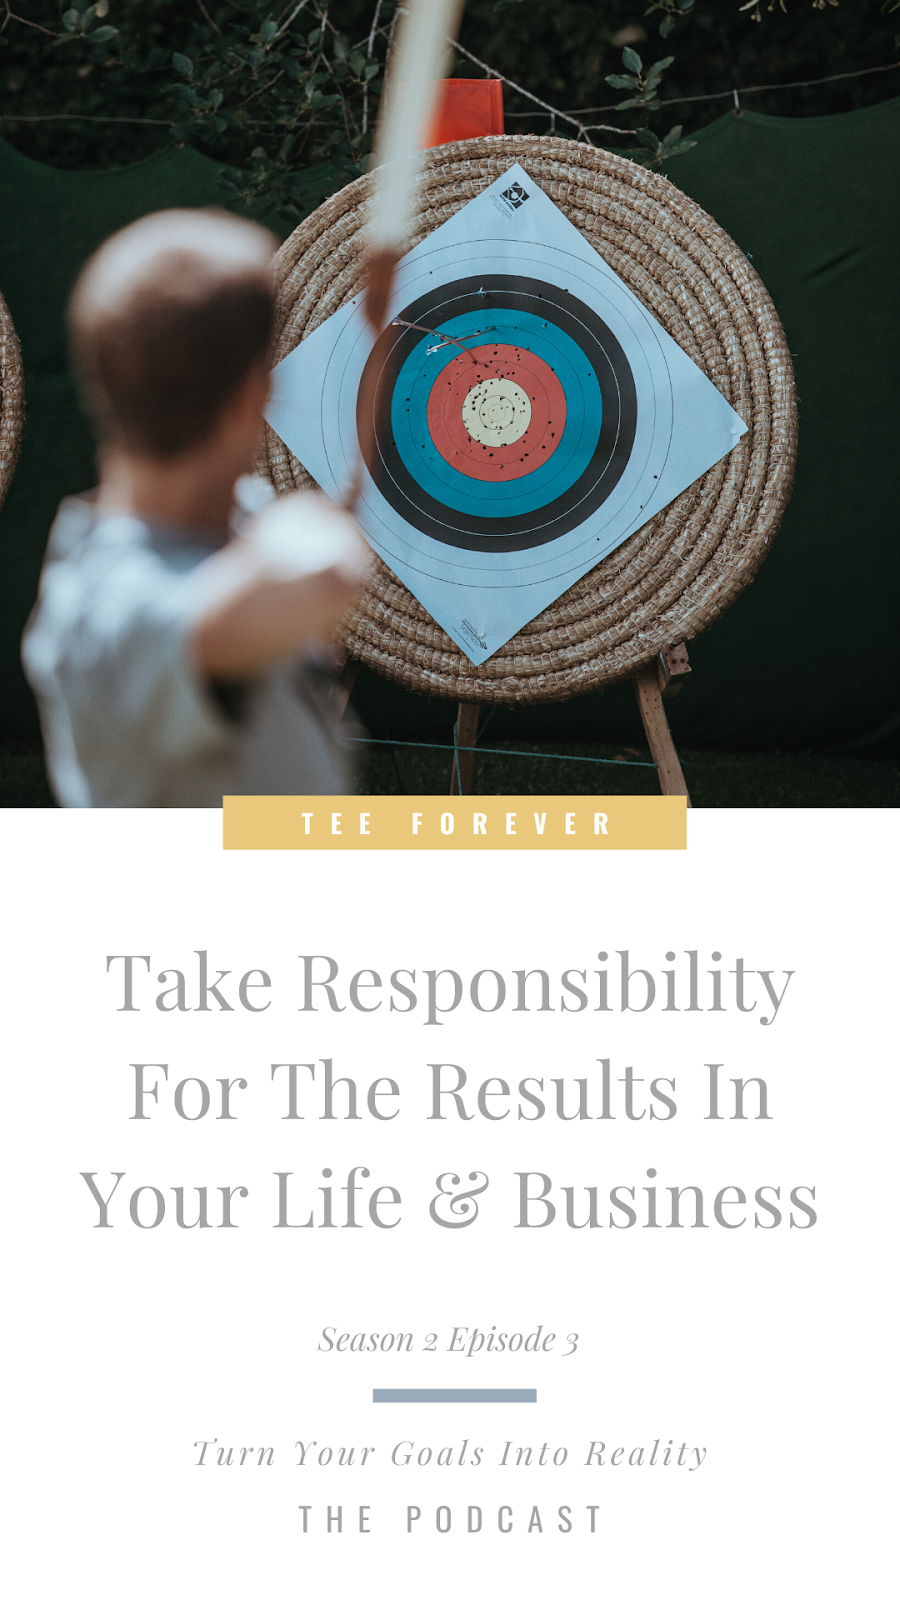 Take Responsibility For The Results In Your Life & Business